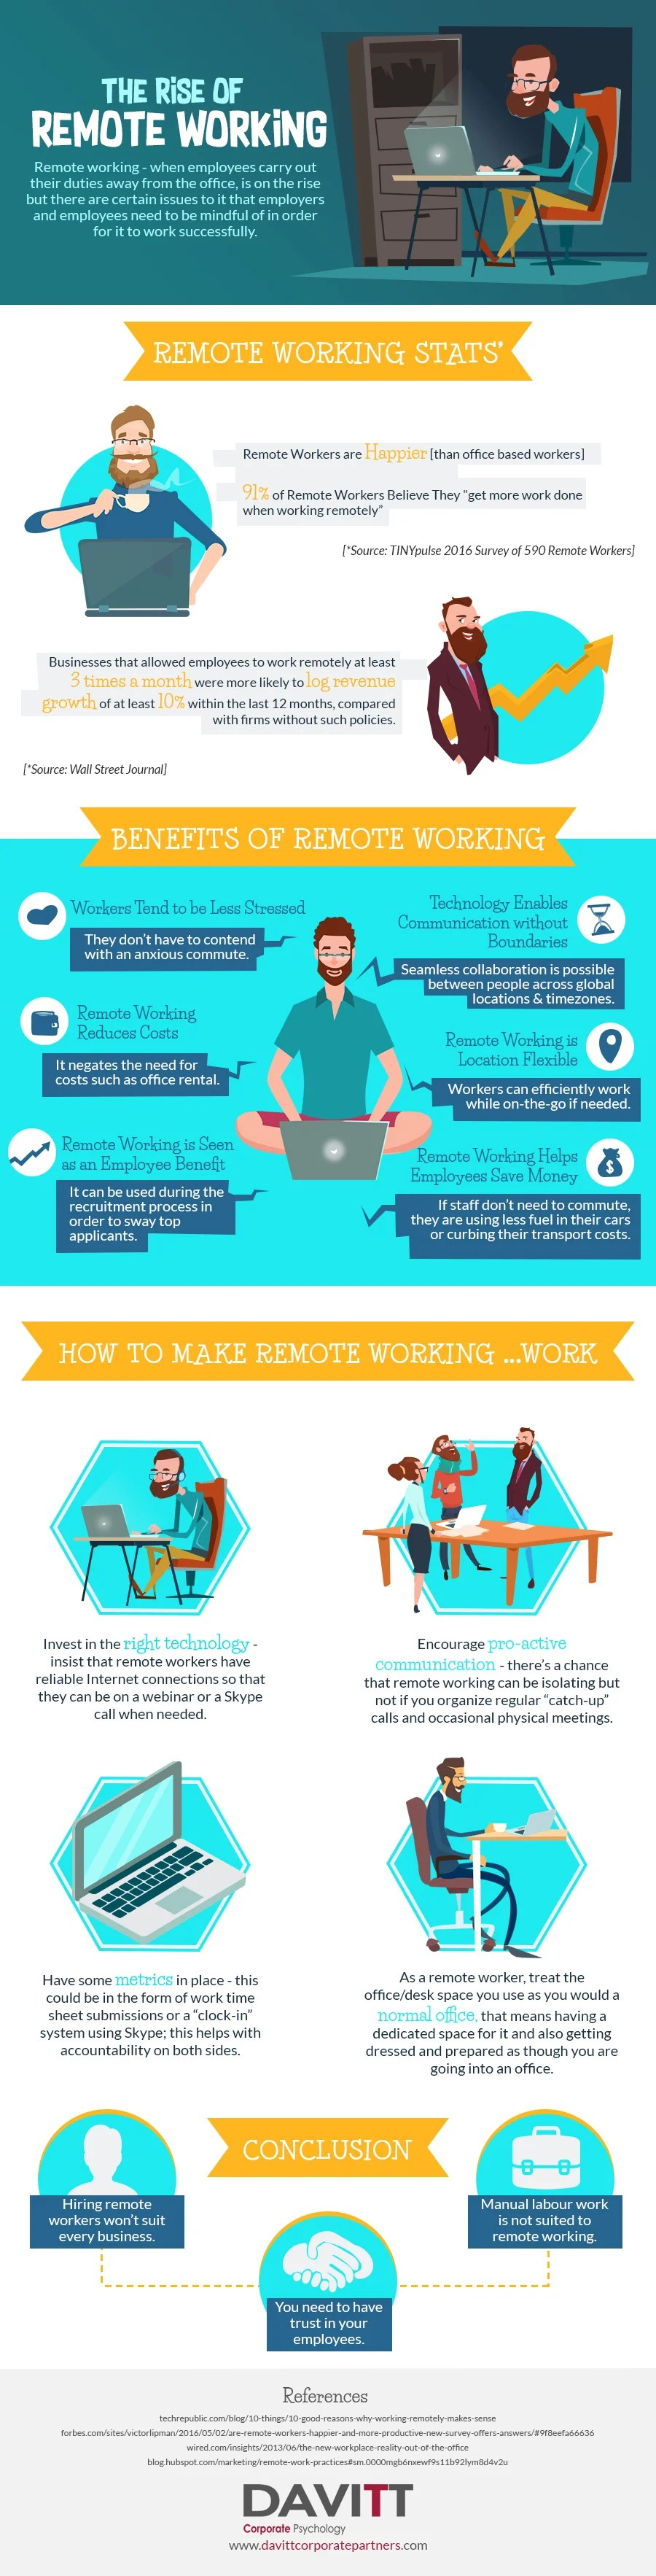 Infographic on remote working